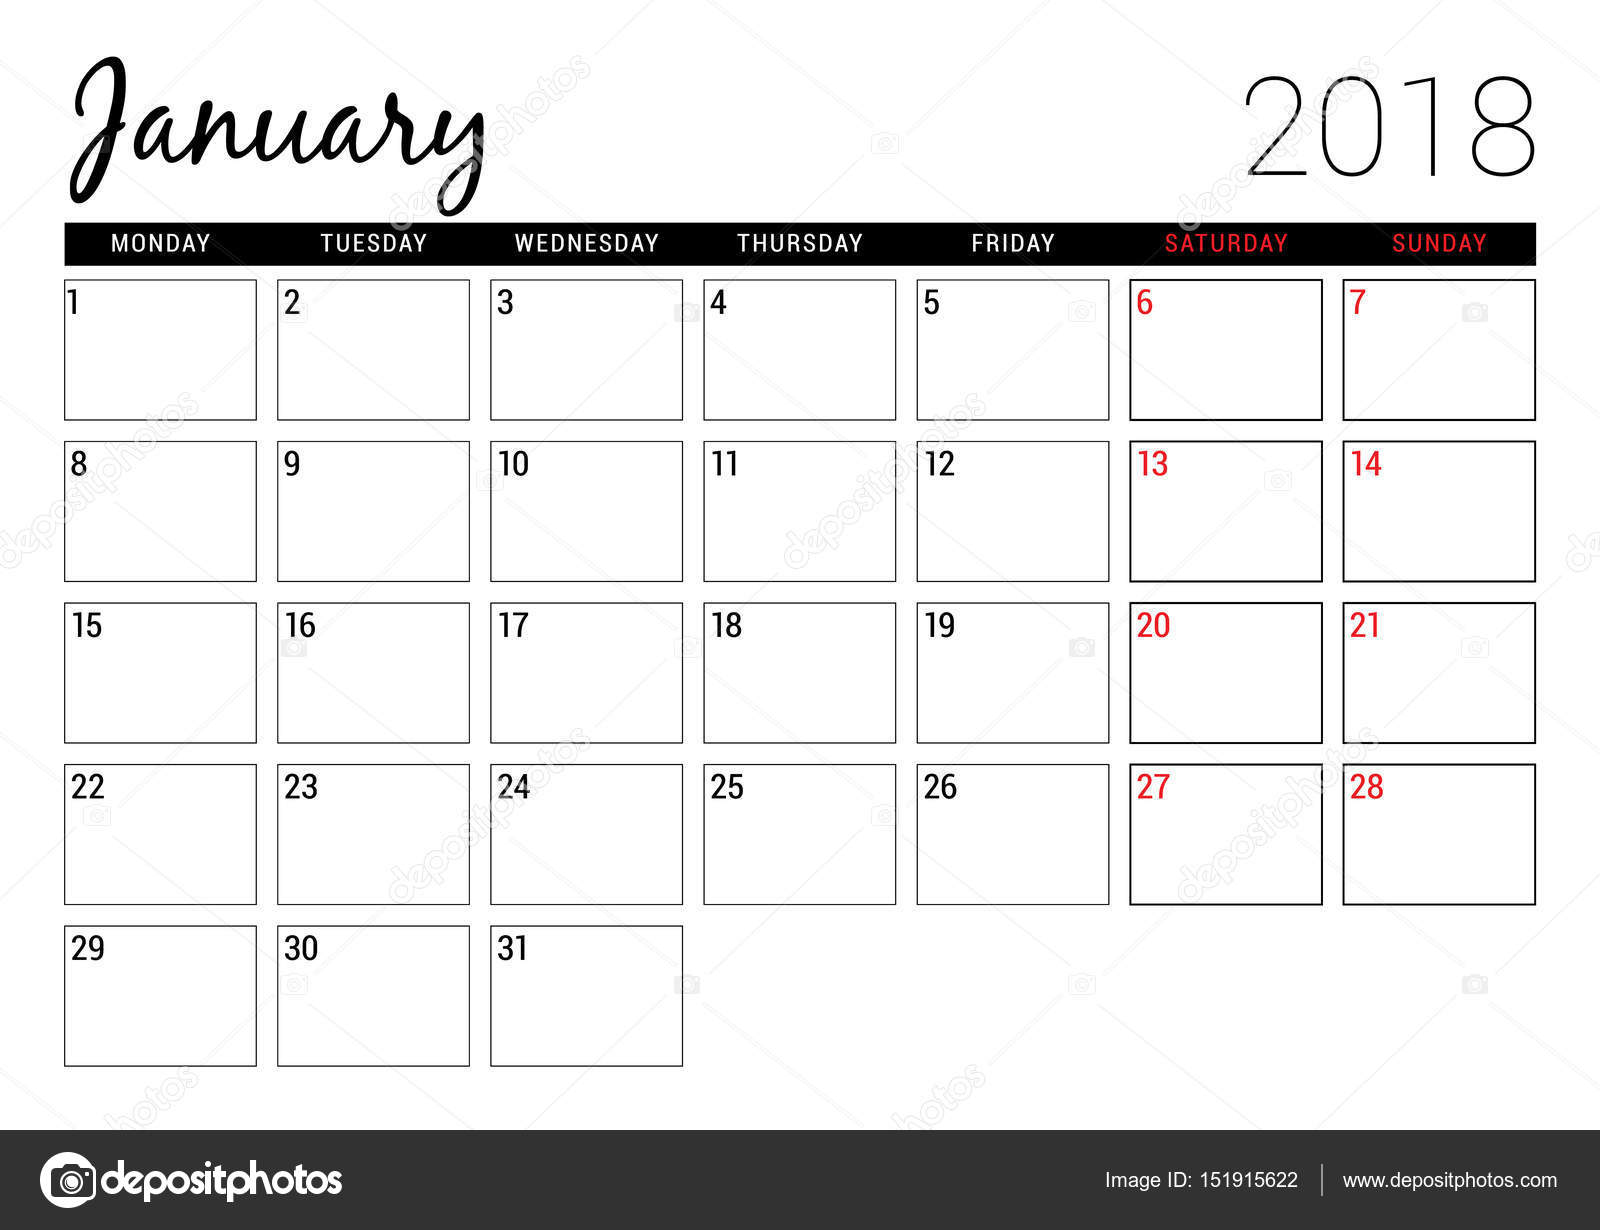 January 2018. Printable calendar planner design template